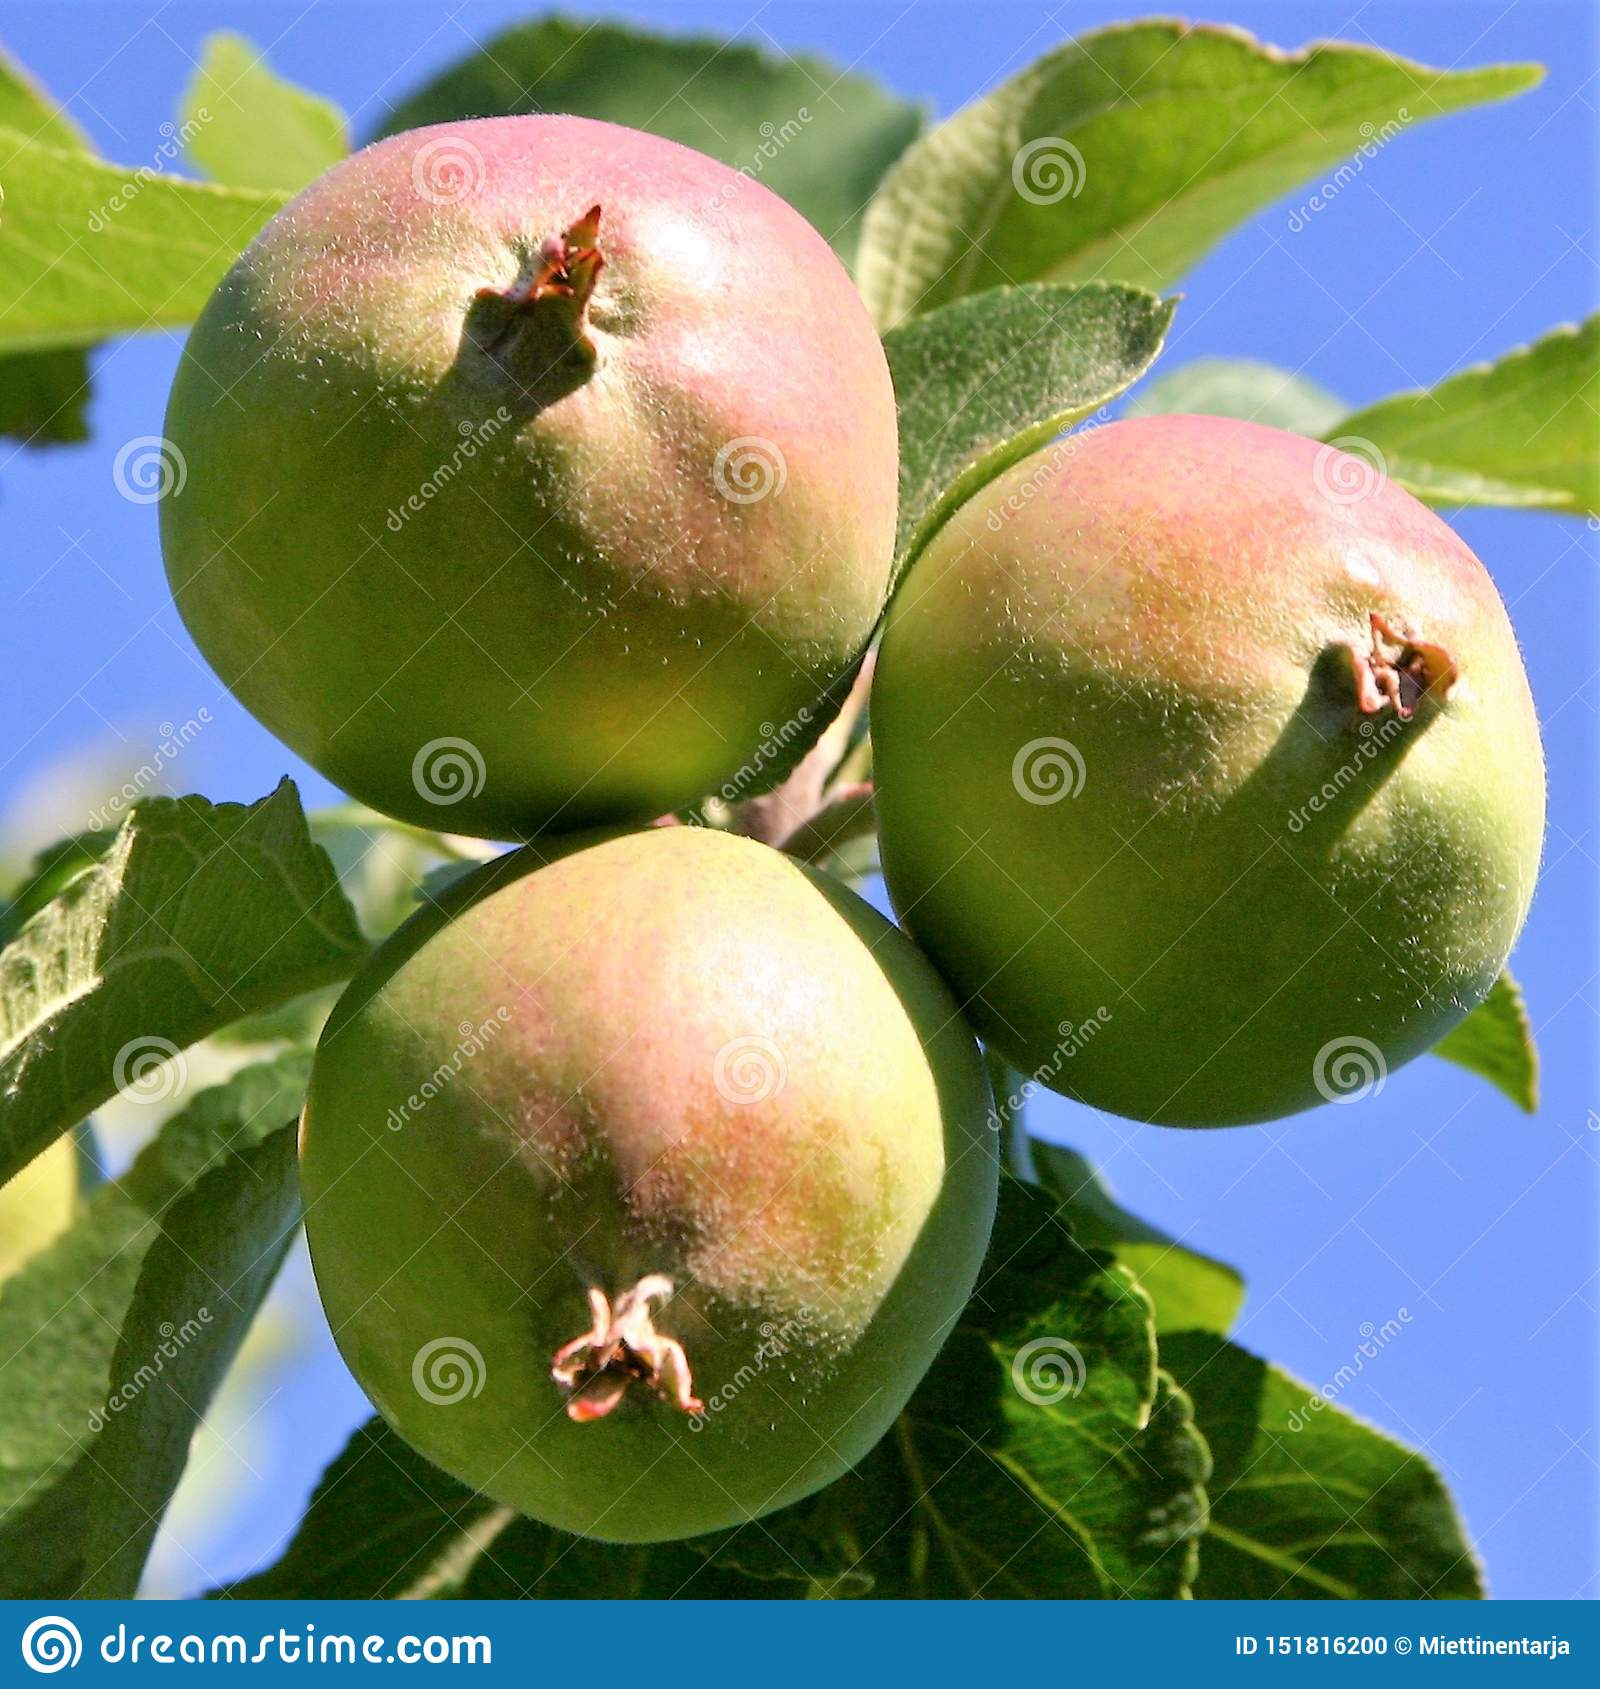 Three red and green apples are growing in an apple tree